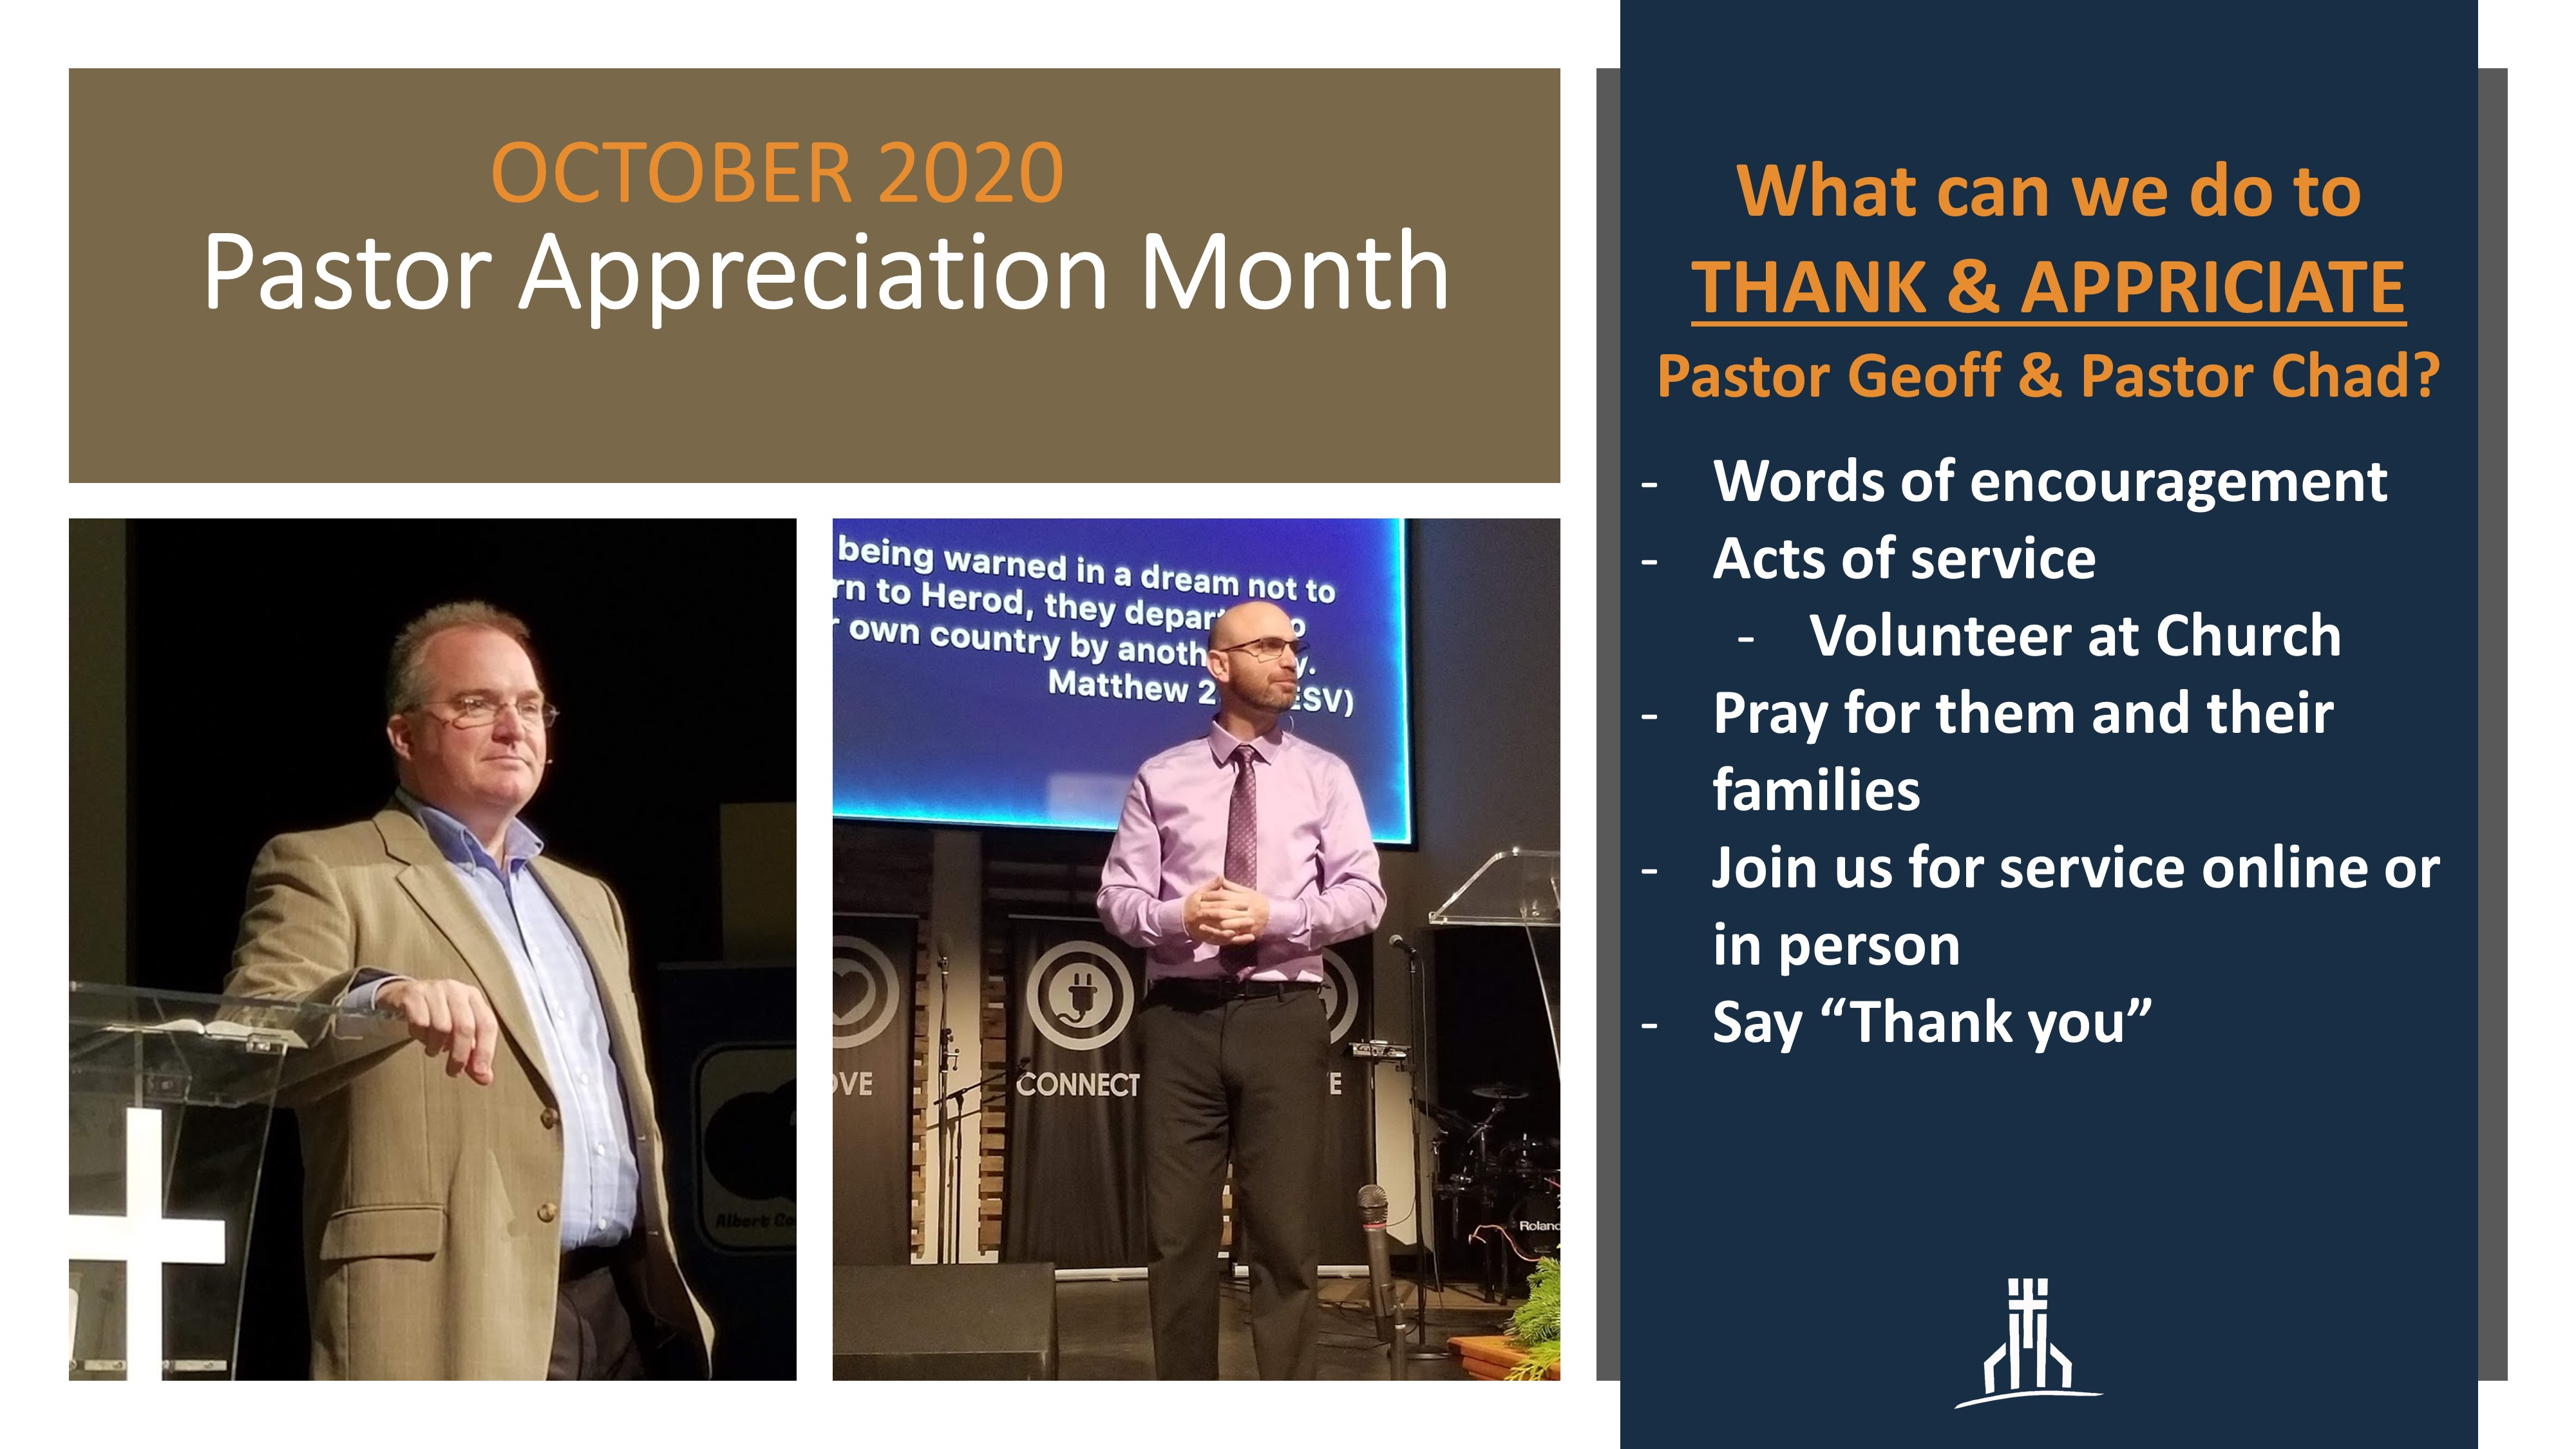 2020 Pastor Appreciation Month 1.jpg